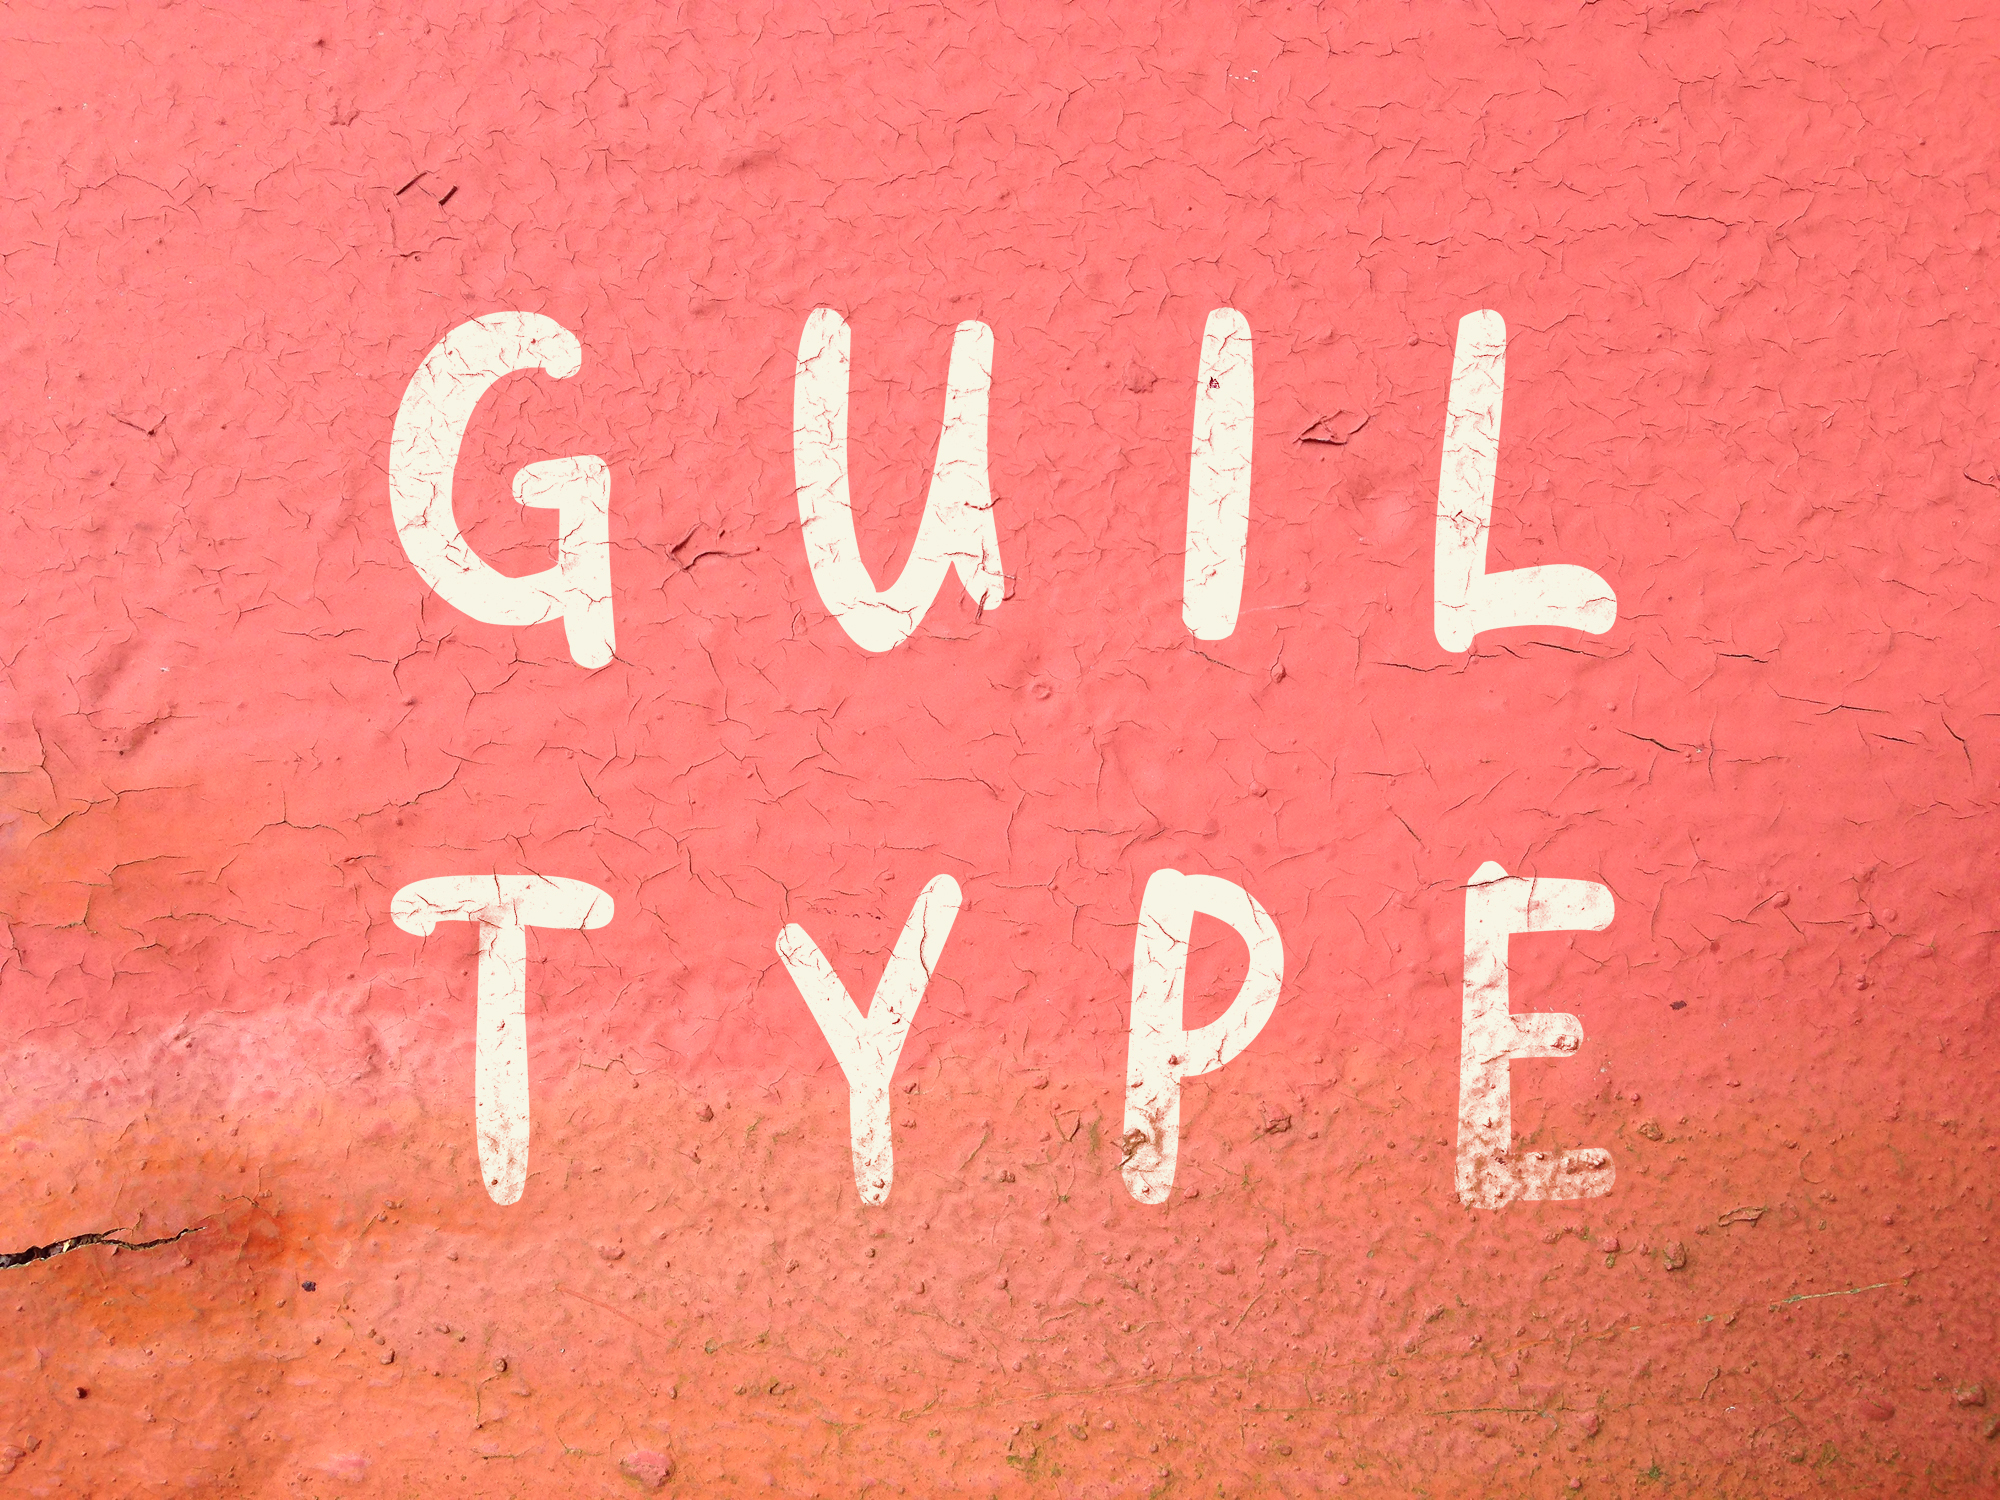 GUILTYPE's profile picture